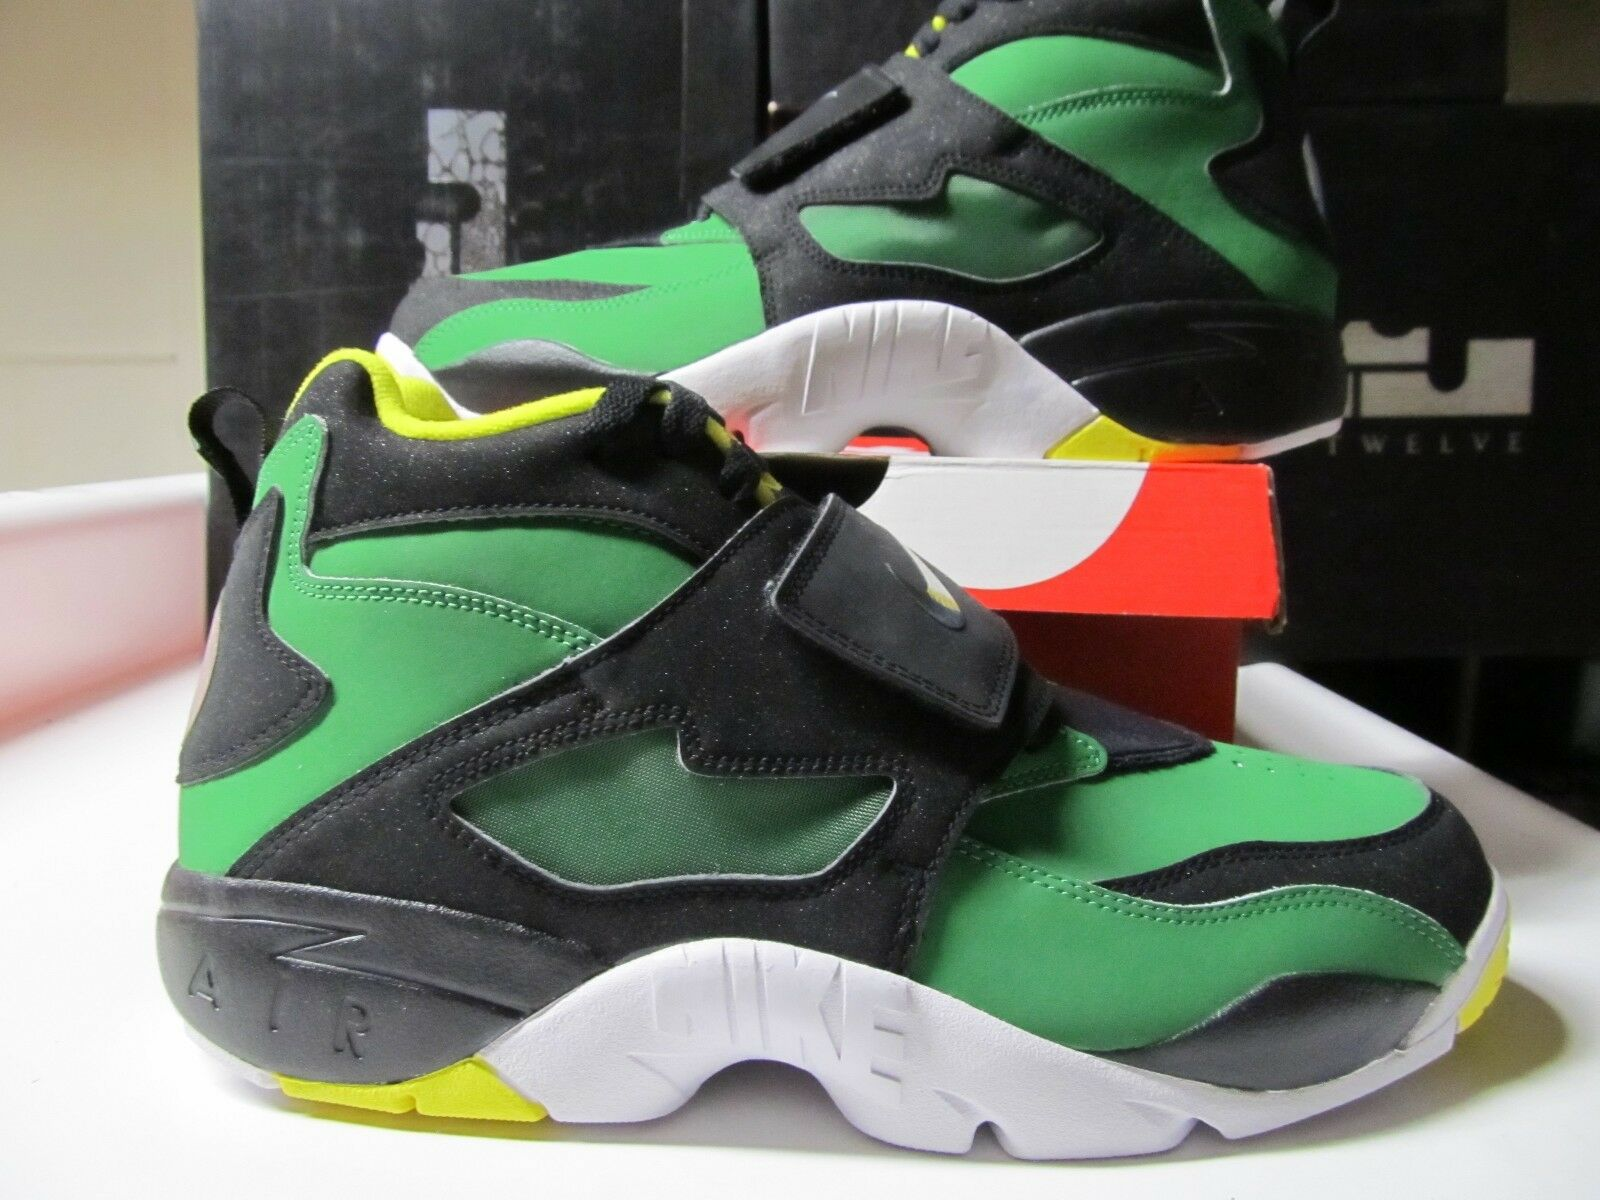 Nike Air Diamond Turf OREGON DUCKS Blck Green Yellow 10 309434 302 deion sanders